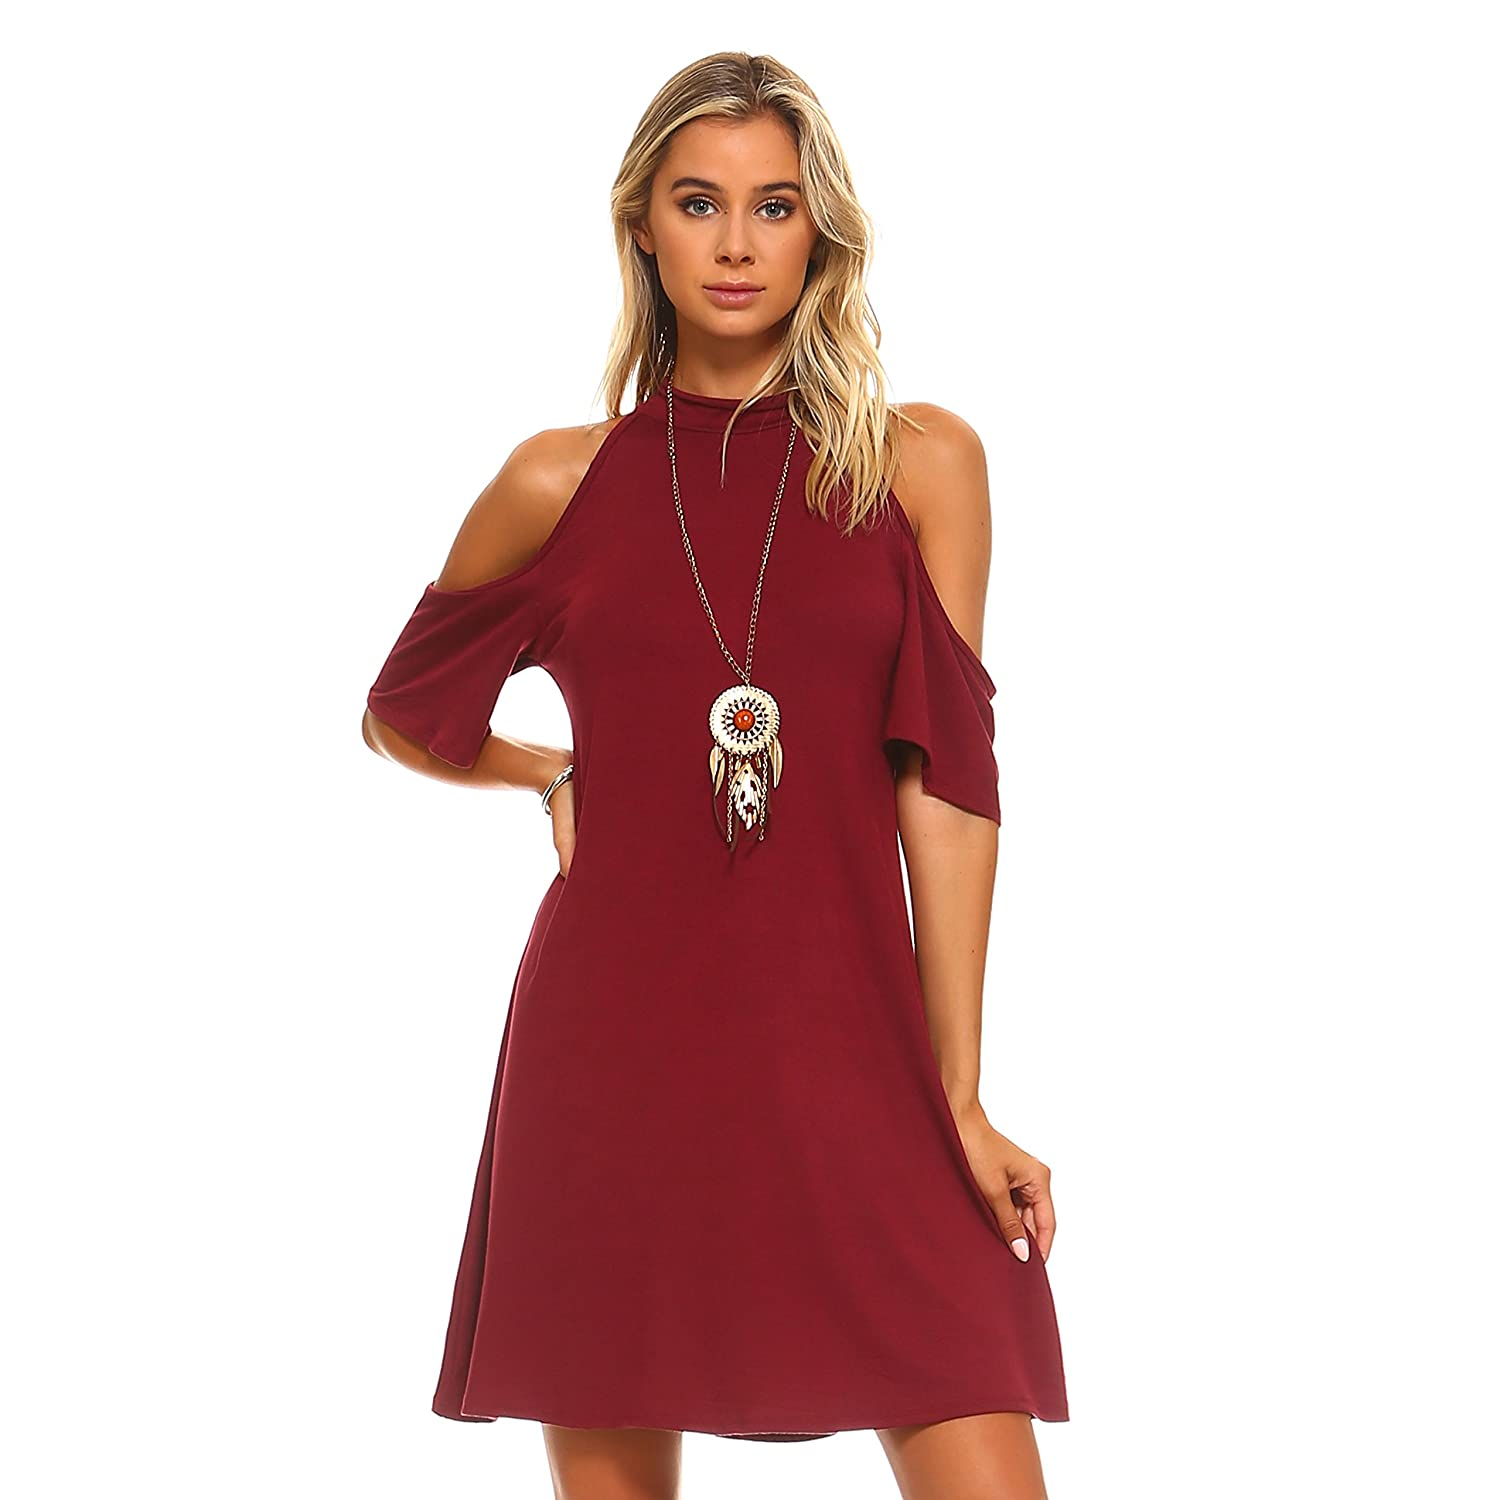 f326cd8f7c9 FRESHEN UP YOUR LOOK  Show your beautiful shoulders and stay in style by  wearing this gorgeous